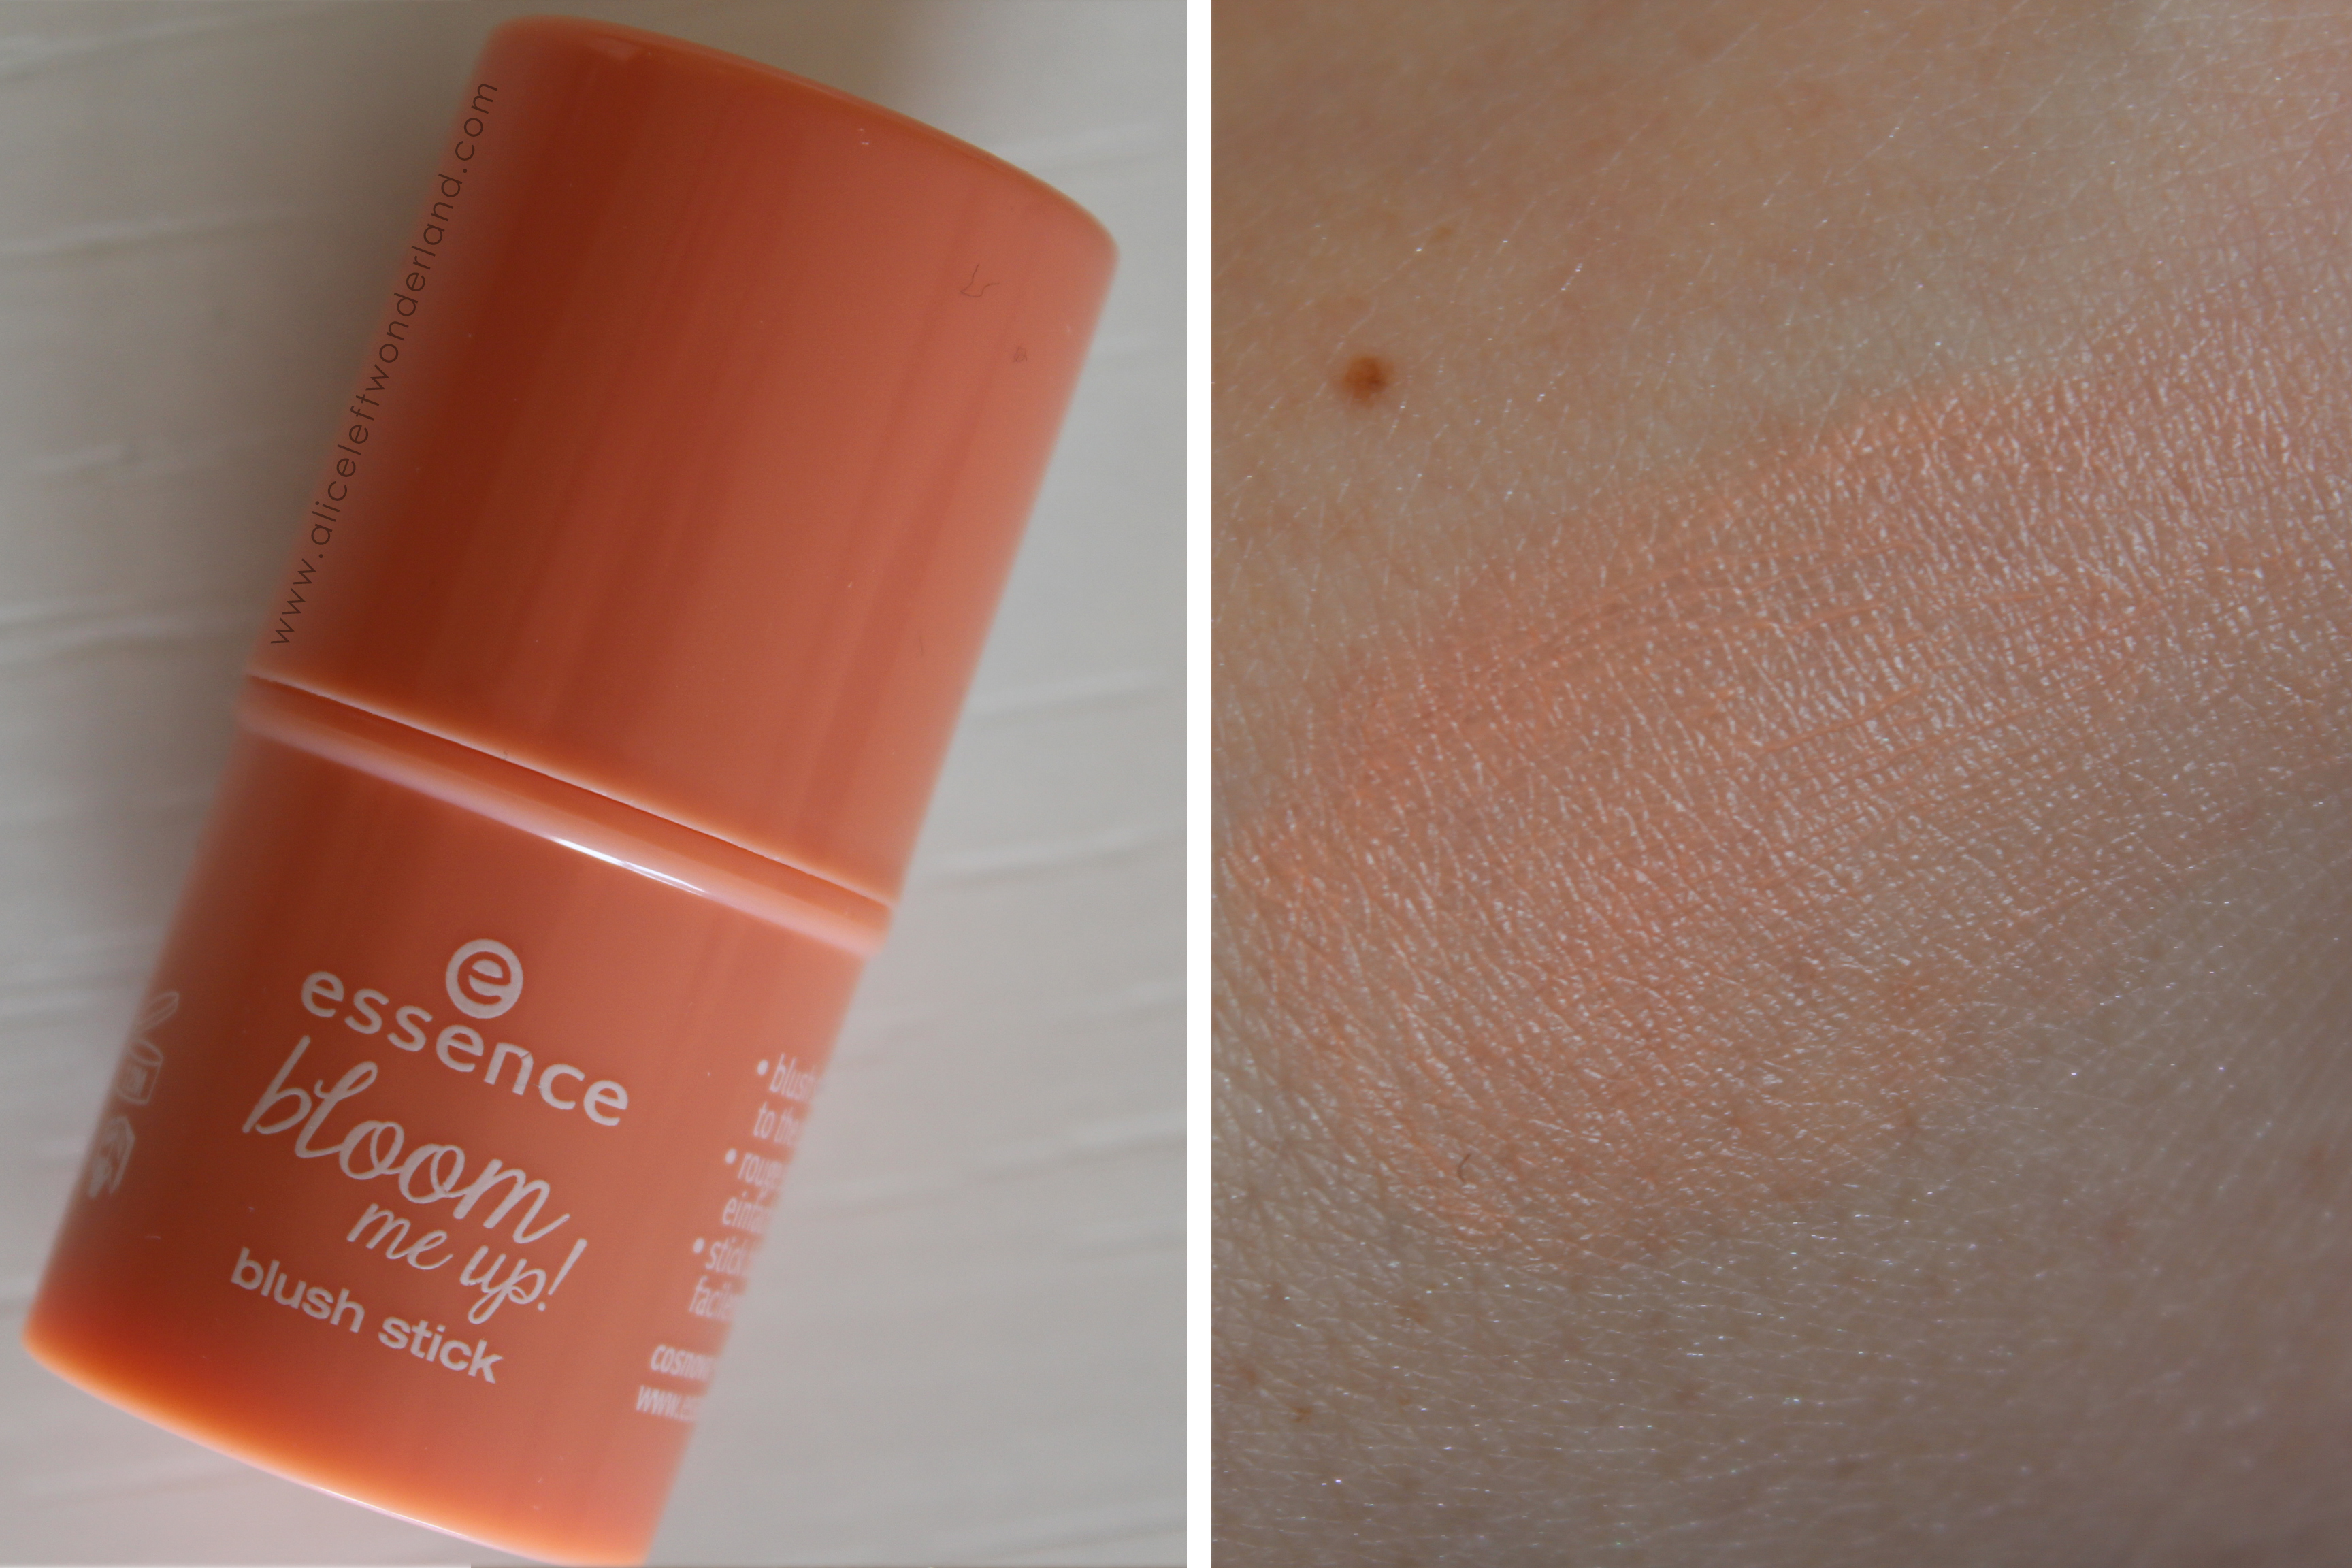 essence-bloom-me-up-blush-stick-swatch